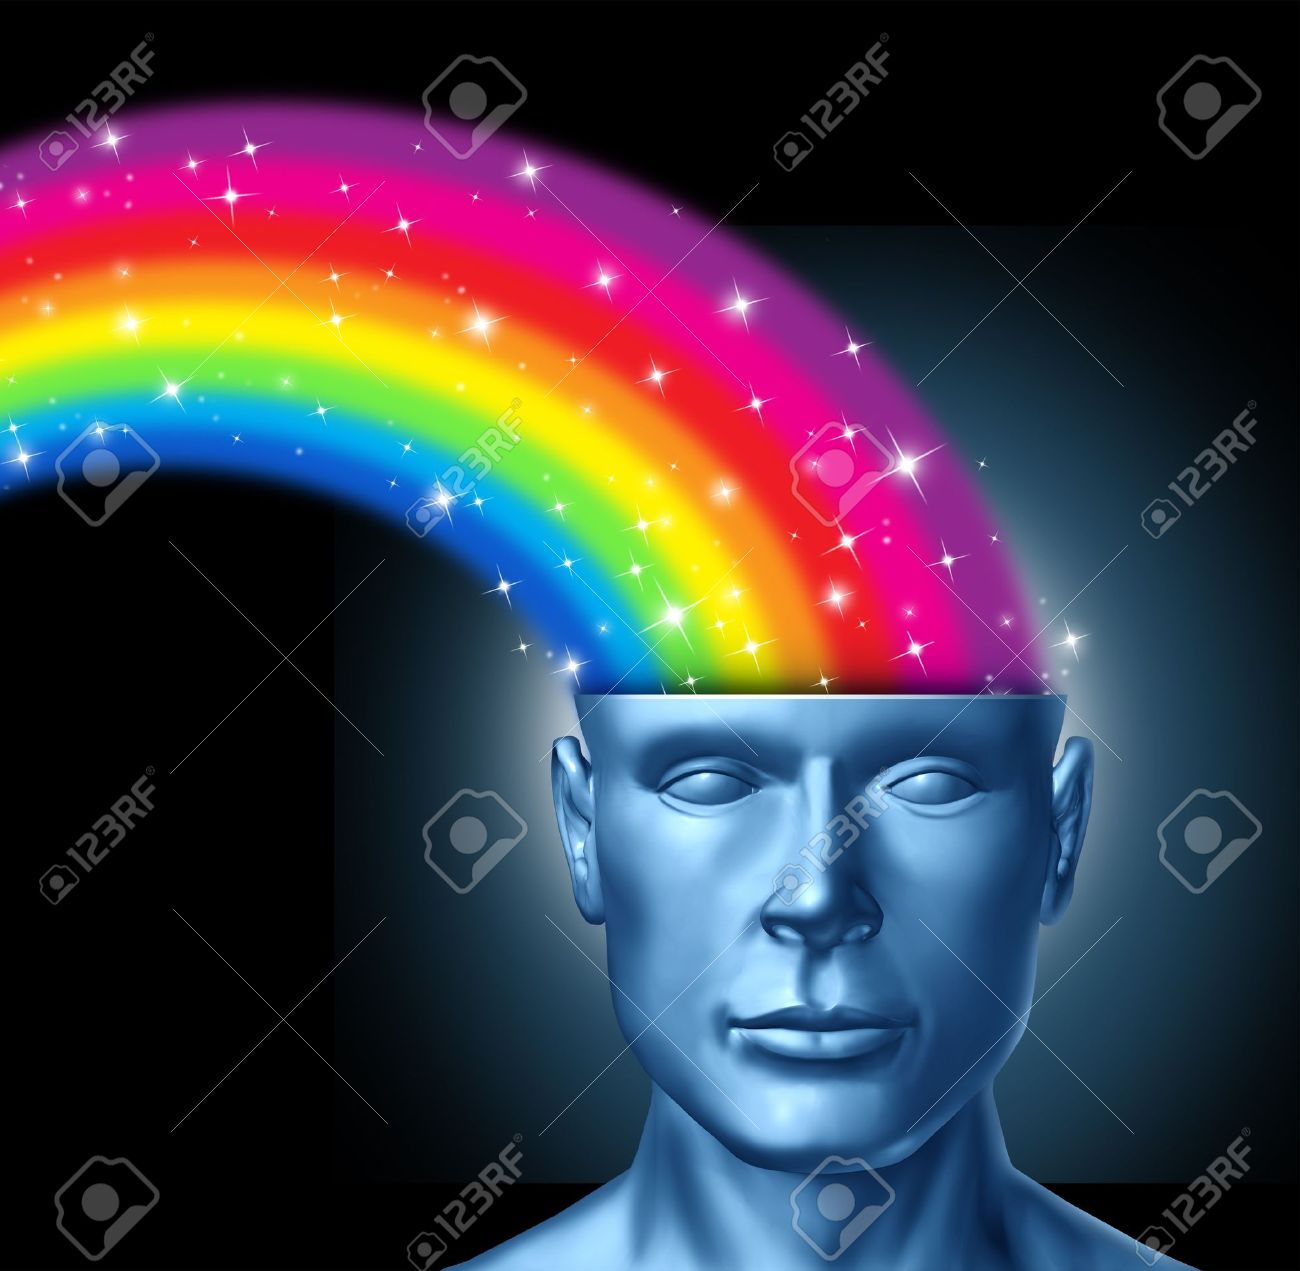 Design thinking and the creative brain with a front facing human head that has a colorful rainbow expressing itself out of the persons brain as a symbol of artistic innovation and new thinking in business leadership. Stock Photo - 12024513